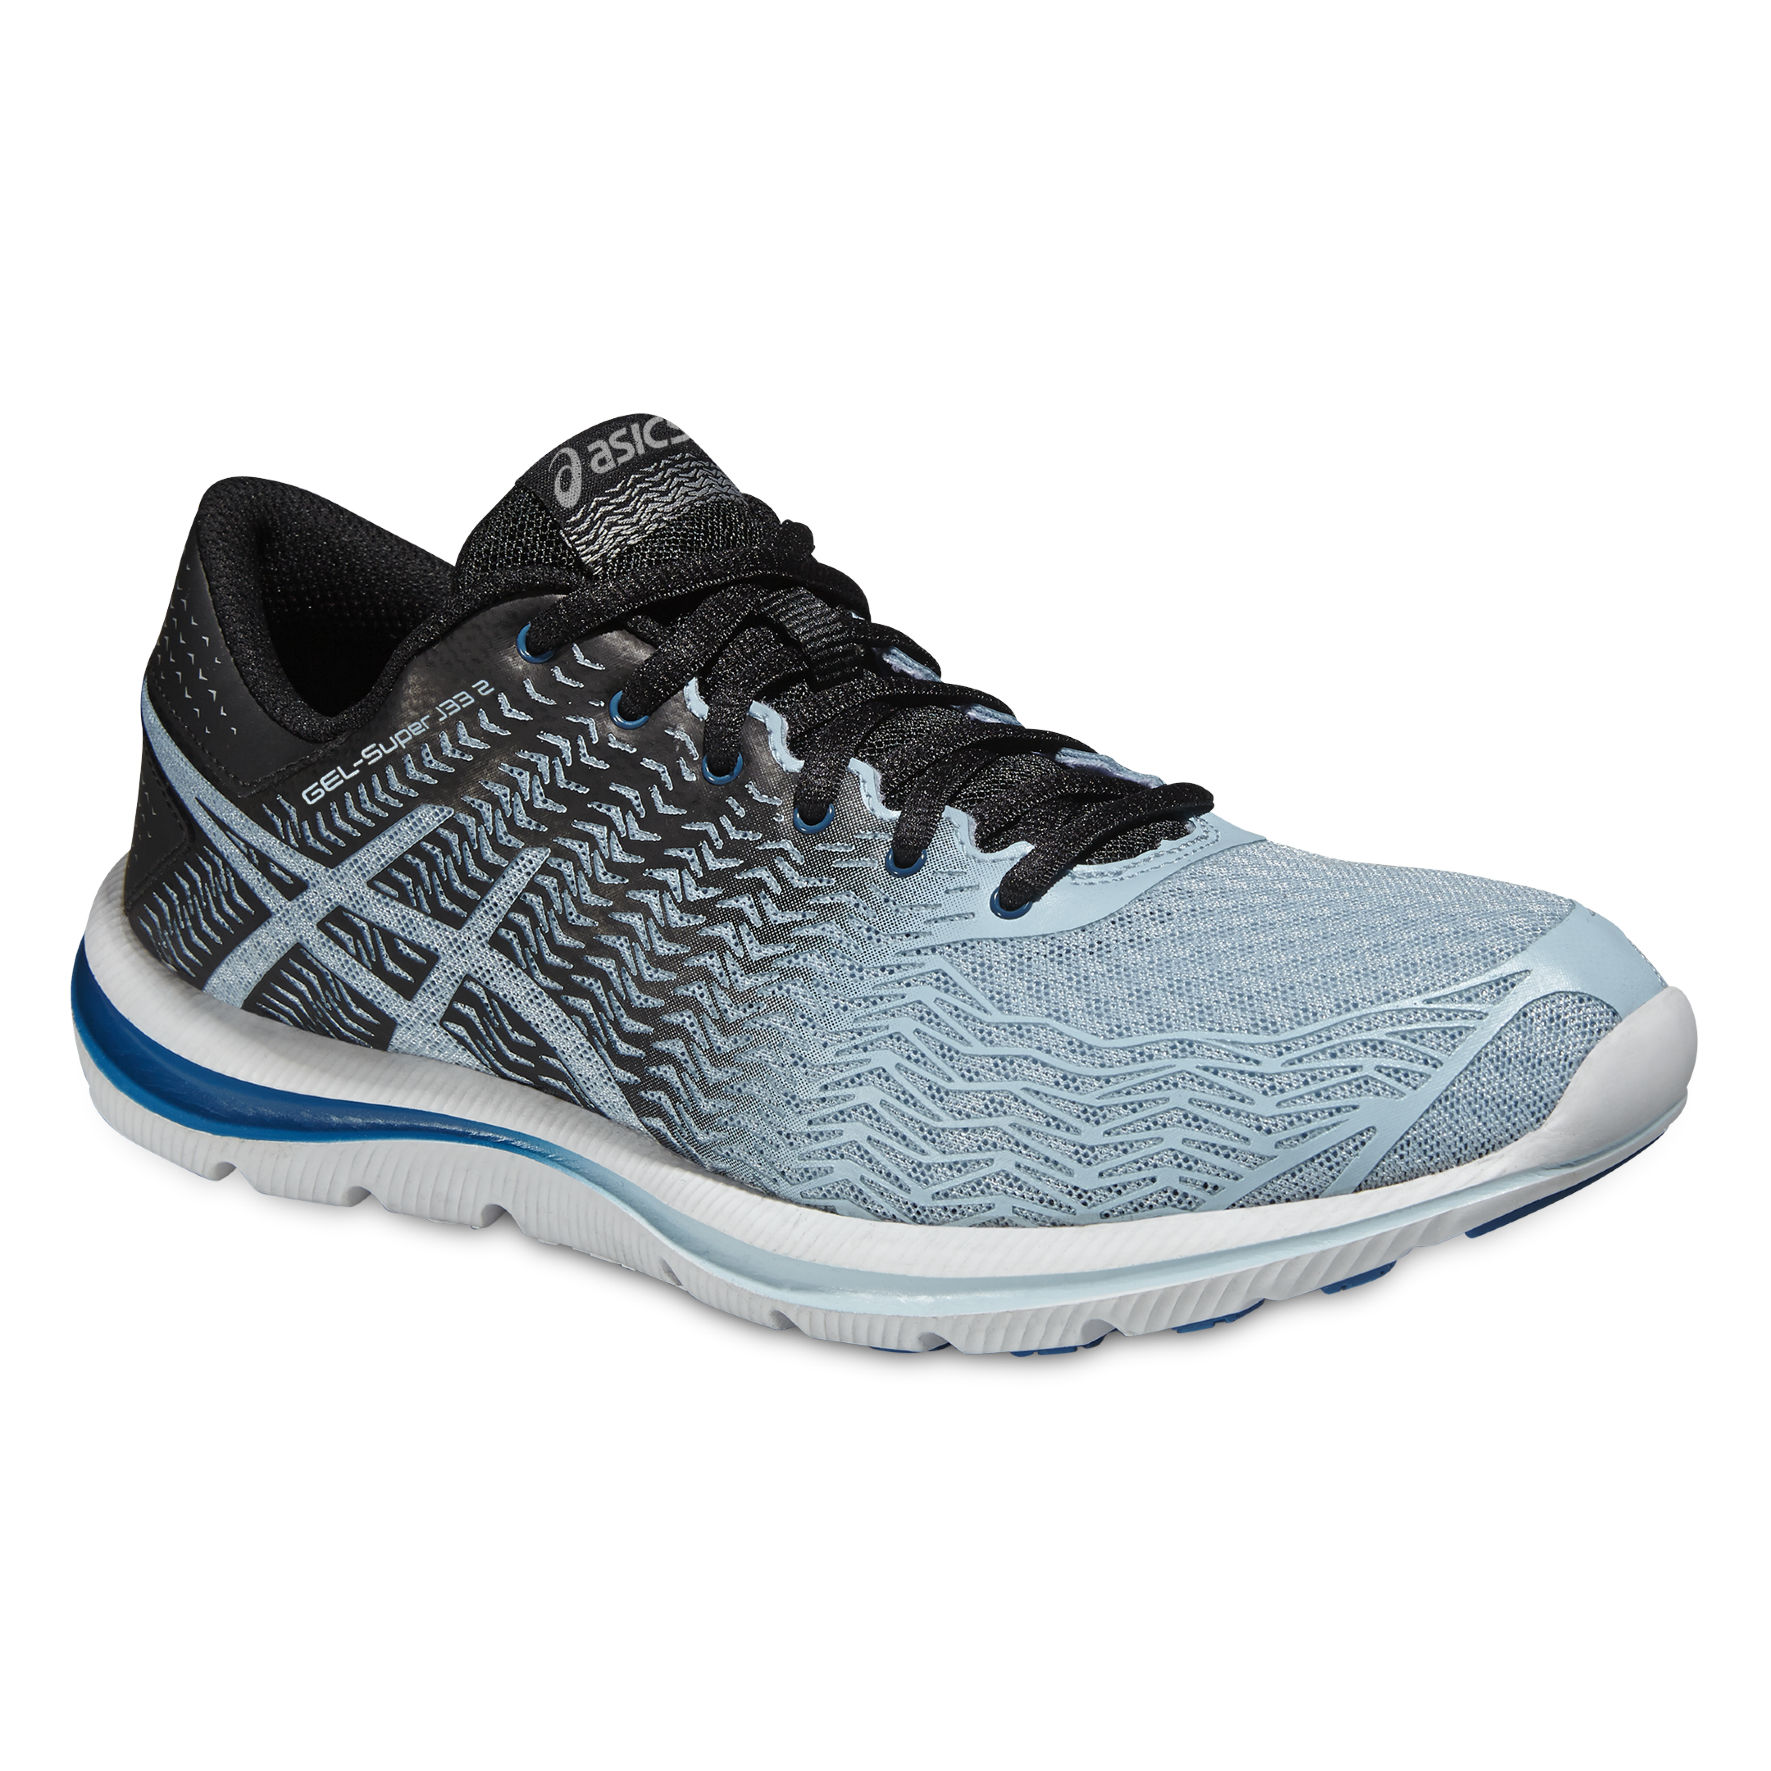 Asics Lady Gel Super J33 2 in Hellblau Schwarz